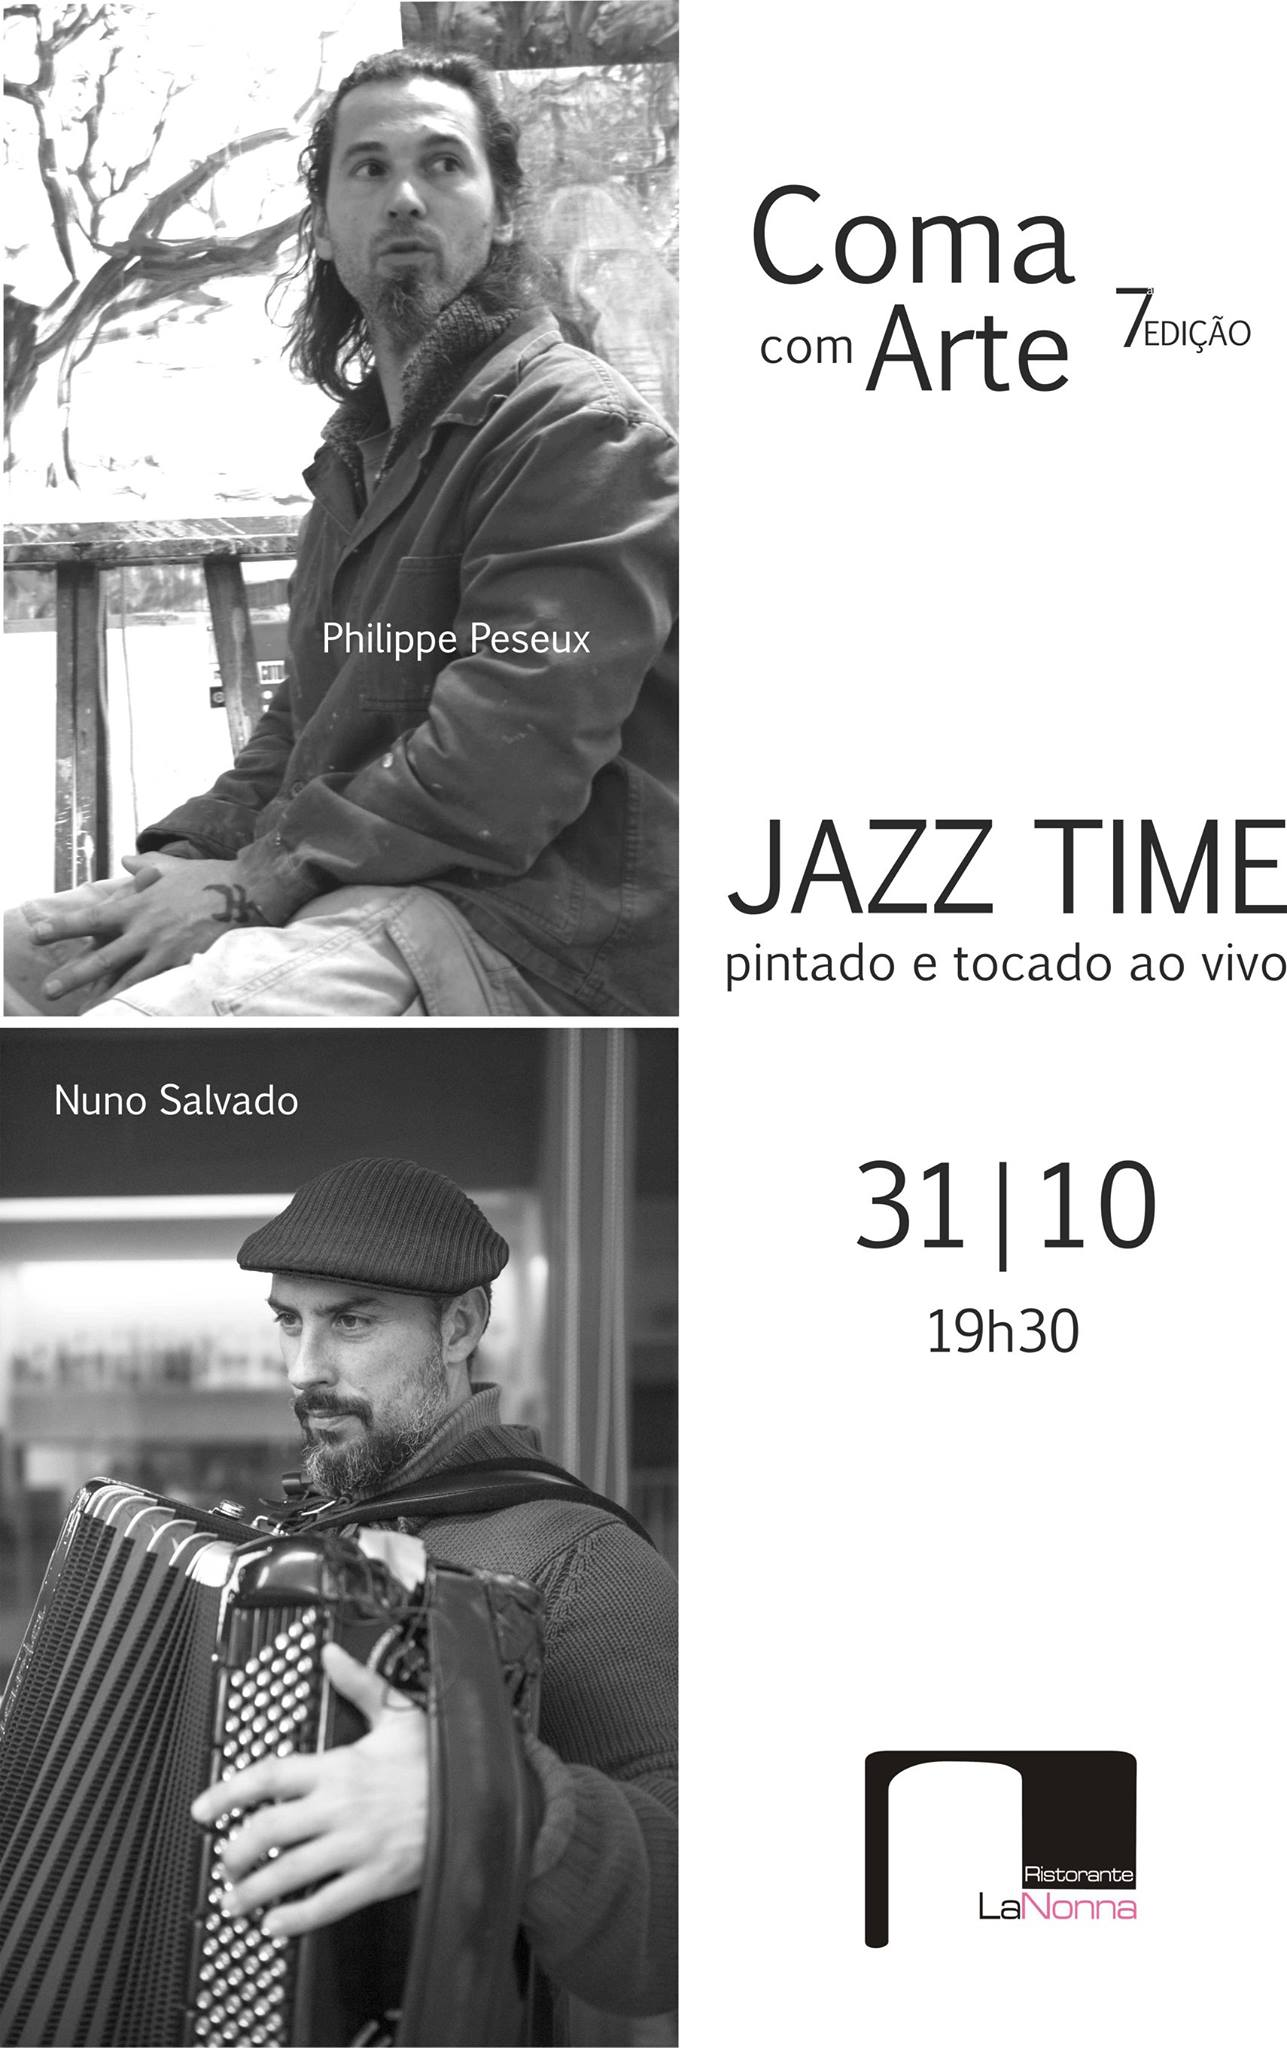 Expo jazz time